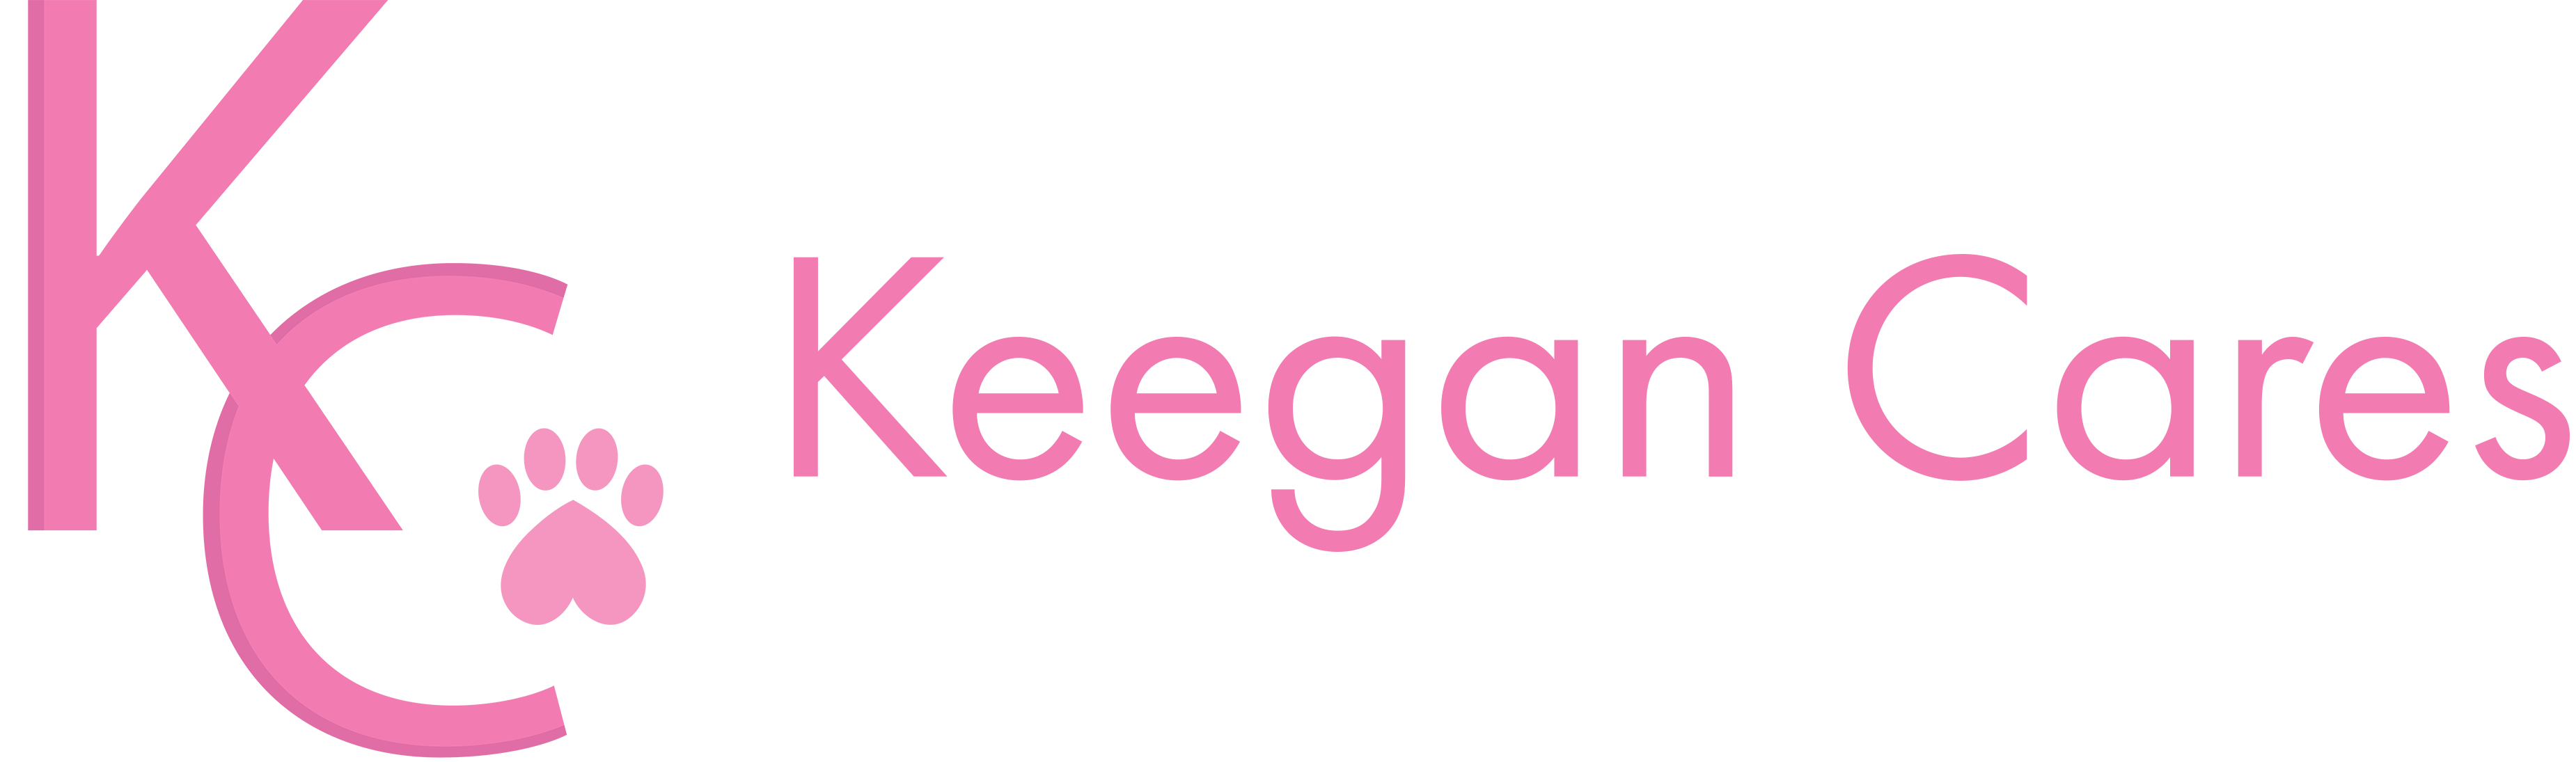 Keegan Cares